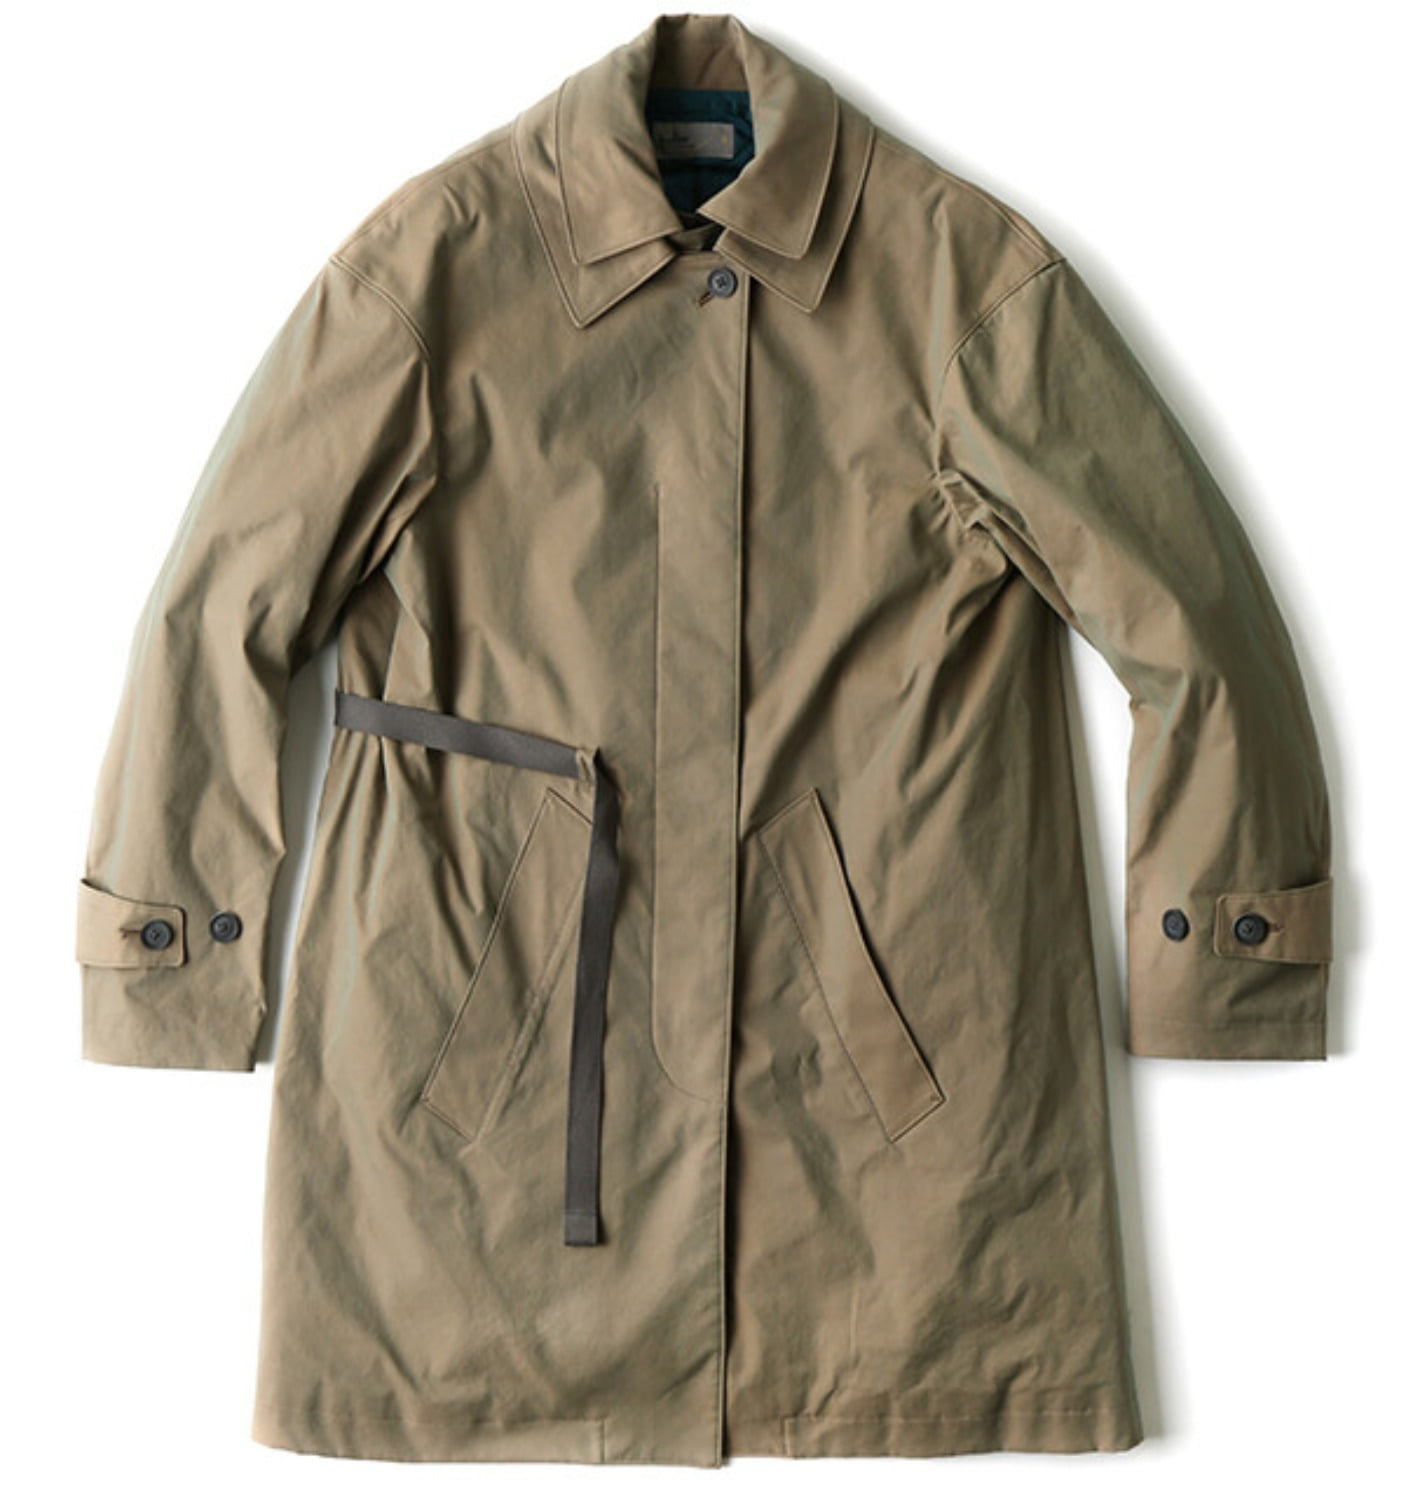 18WPL-CO4121 COAT KHAKI